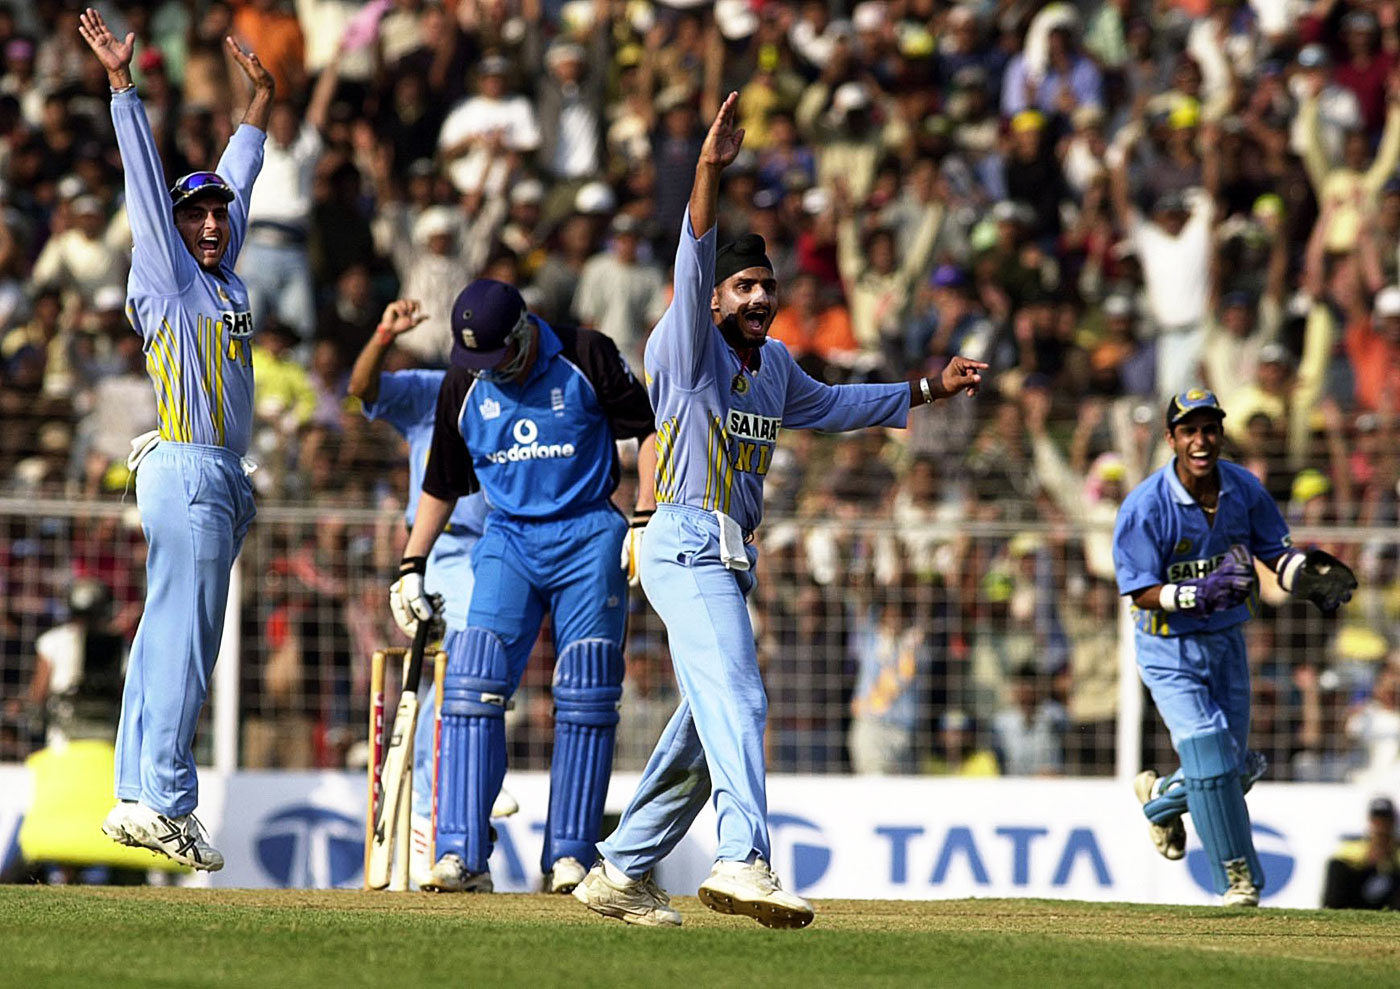 Bowling against England at the Wankhede in 2002.